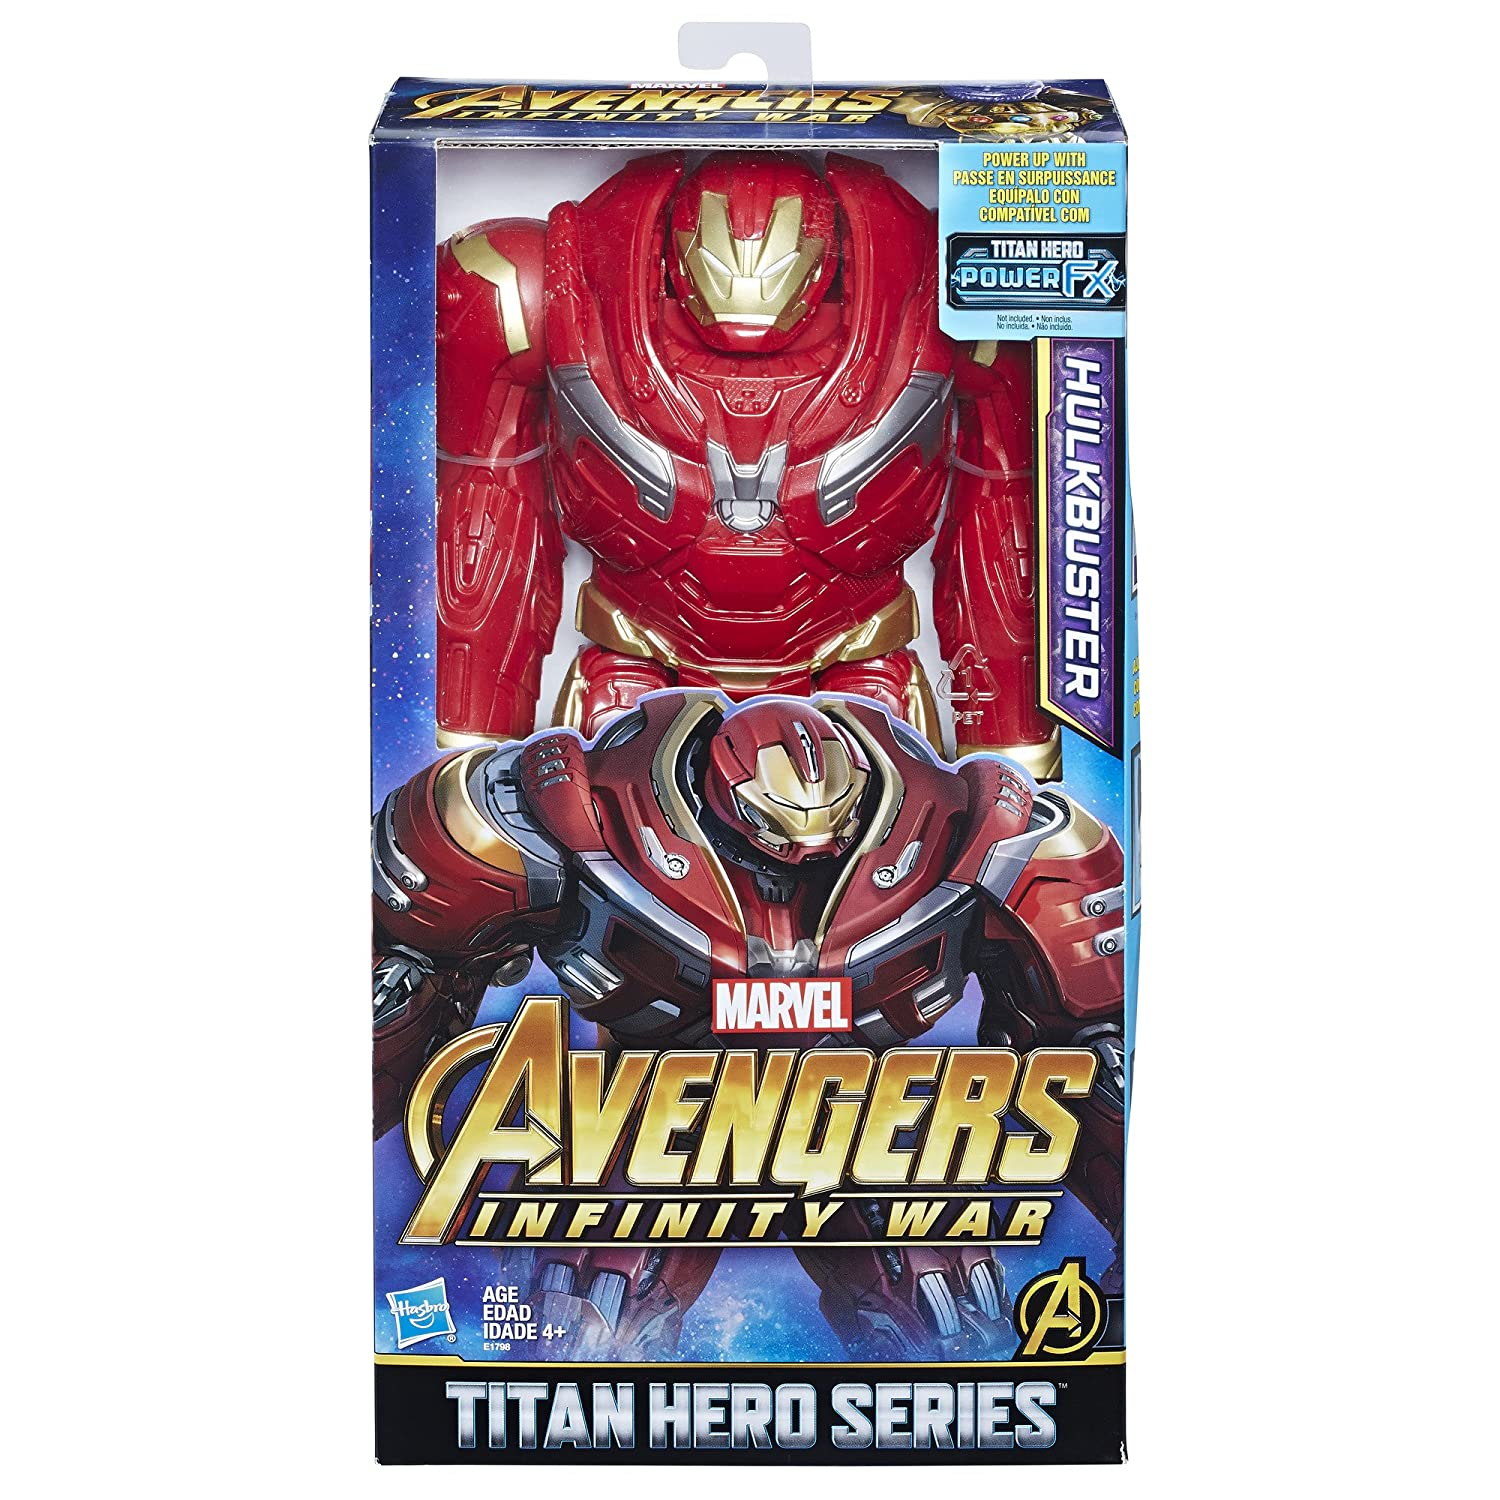 Avengers Marvel Infinity War Titan Hero Series Hulkbuster with Titan Hero Power FX Port Hasbro E1798